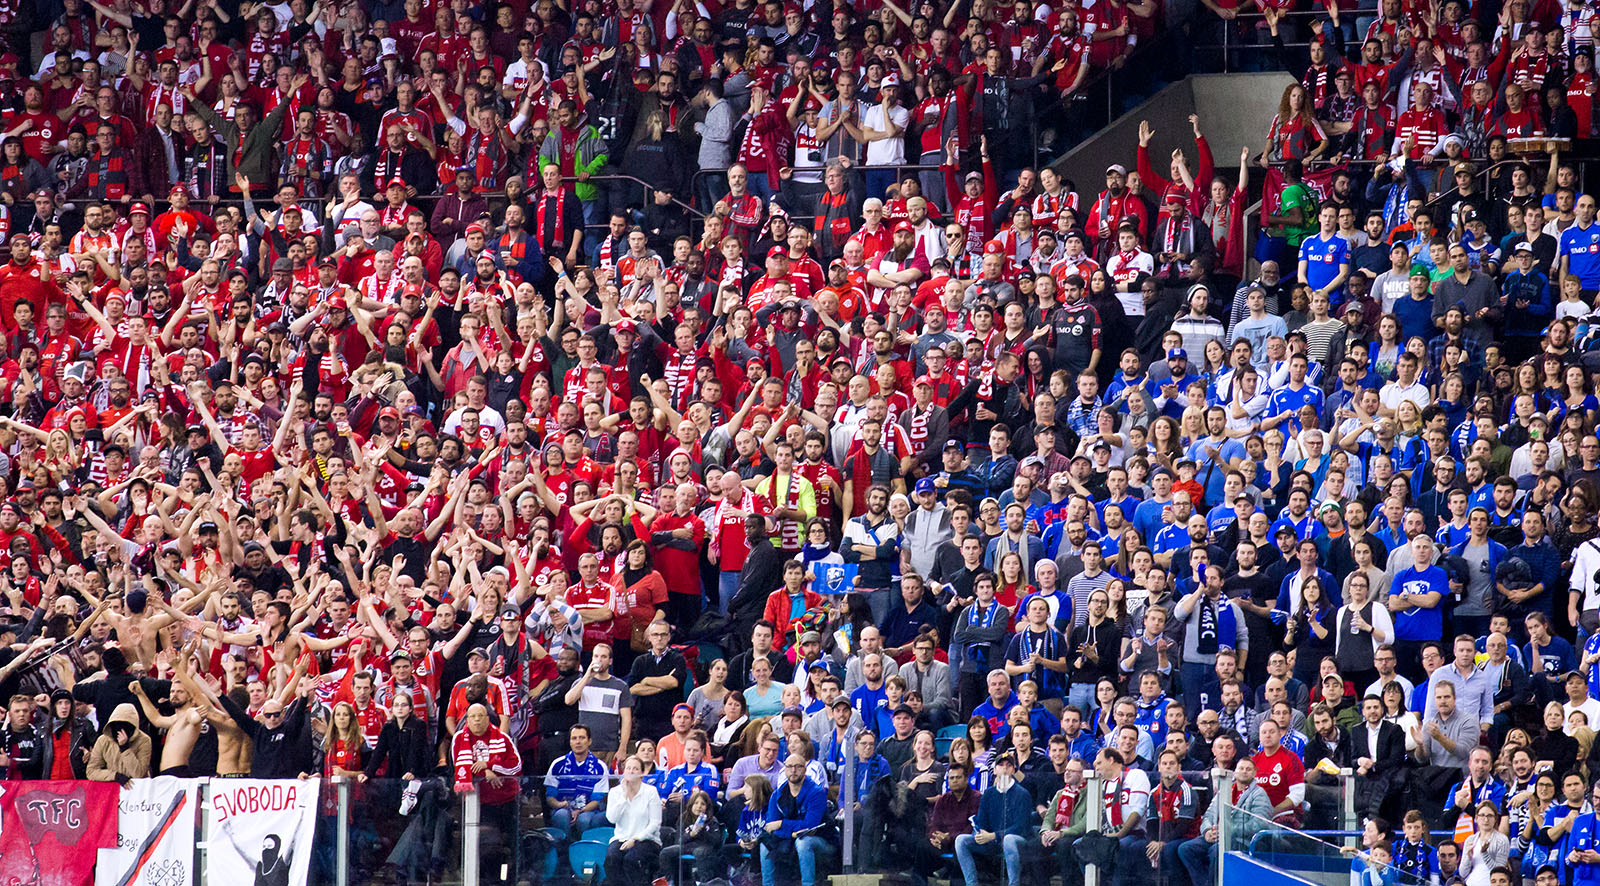 The line in the stands that divides Toronto FC supporters from Montreal Impact fans during the first ever Canadian Eastern Conference Final match in Montreal. Image by Dennis Marciniak of denMAR Media.